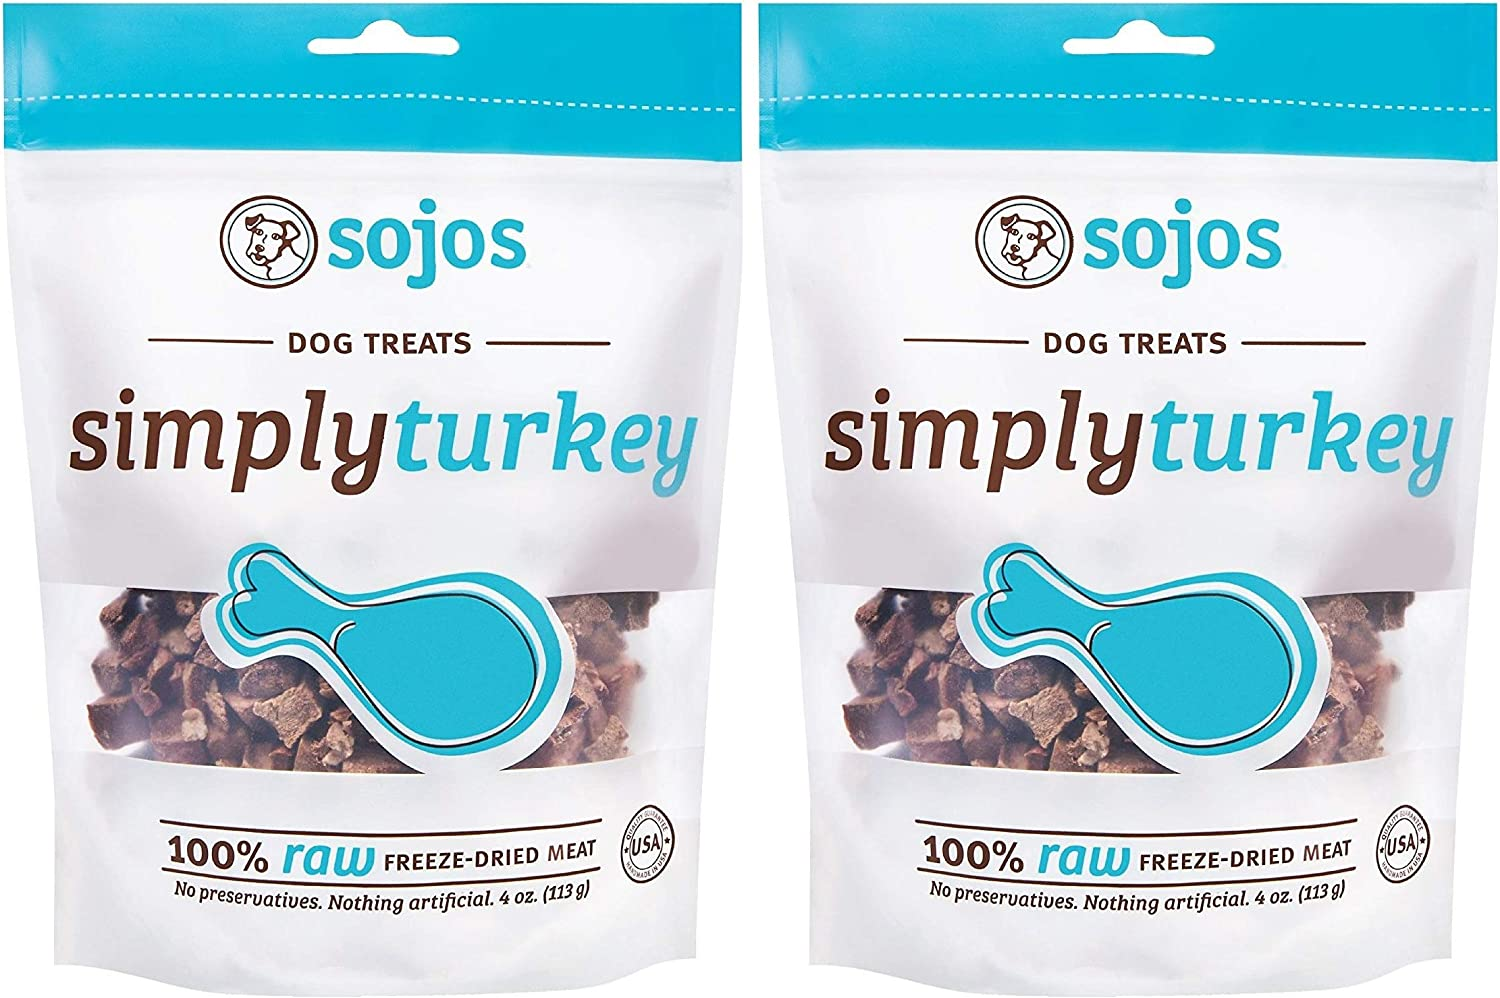 SOJOS 2 Pack of Simply Turkey Dog Treats, 4 Ounces each, 100 Percent Raw Freeze-Dried Meat, Made in the USA